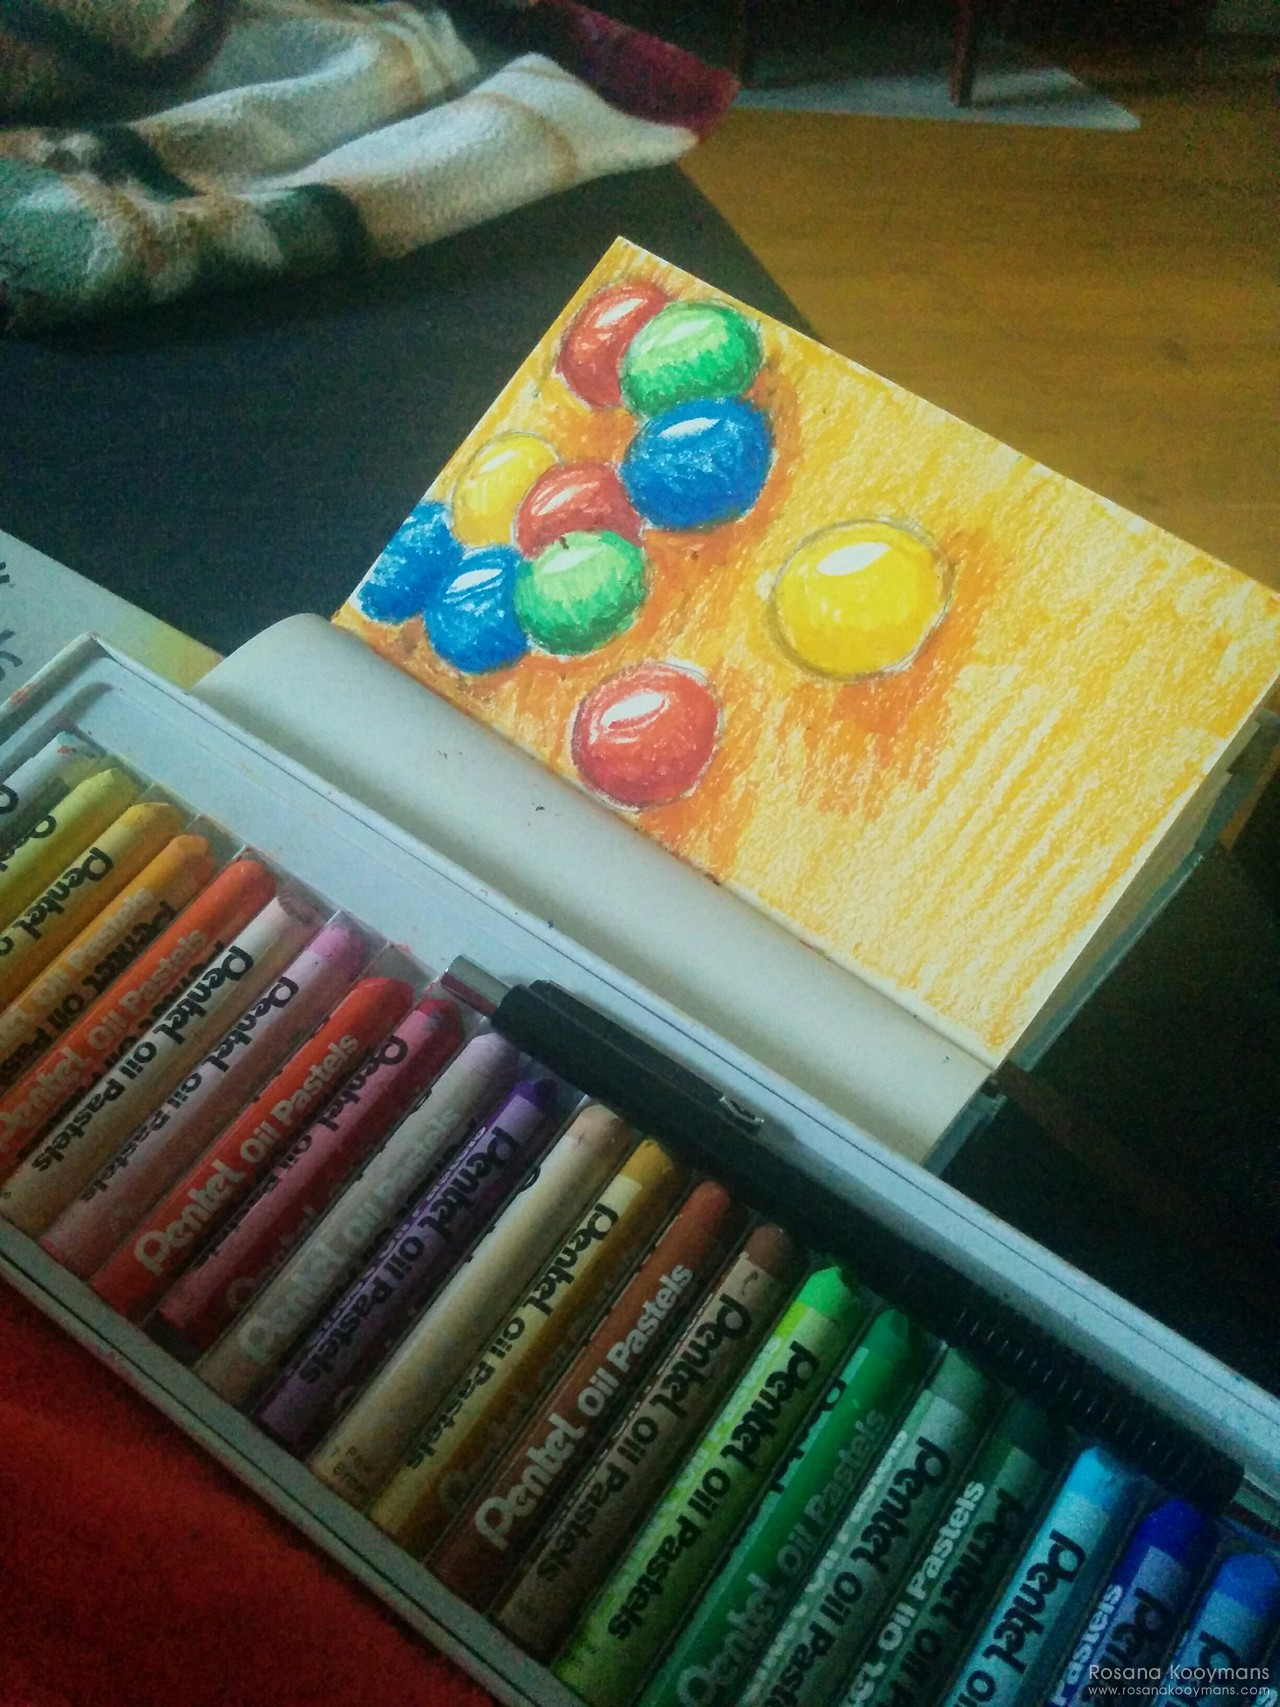 365 - April 14, 2017: Playing with pastels